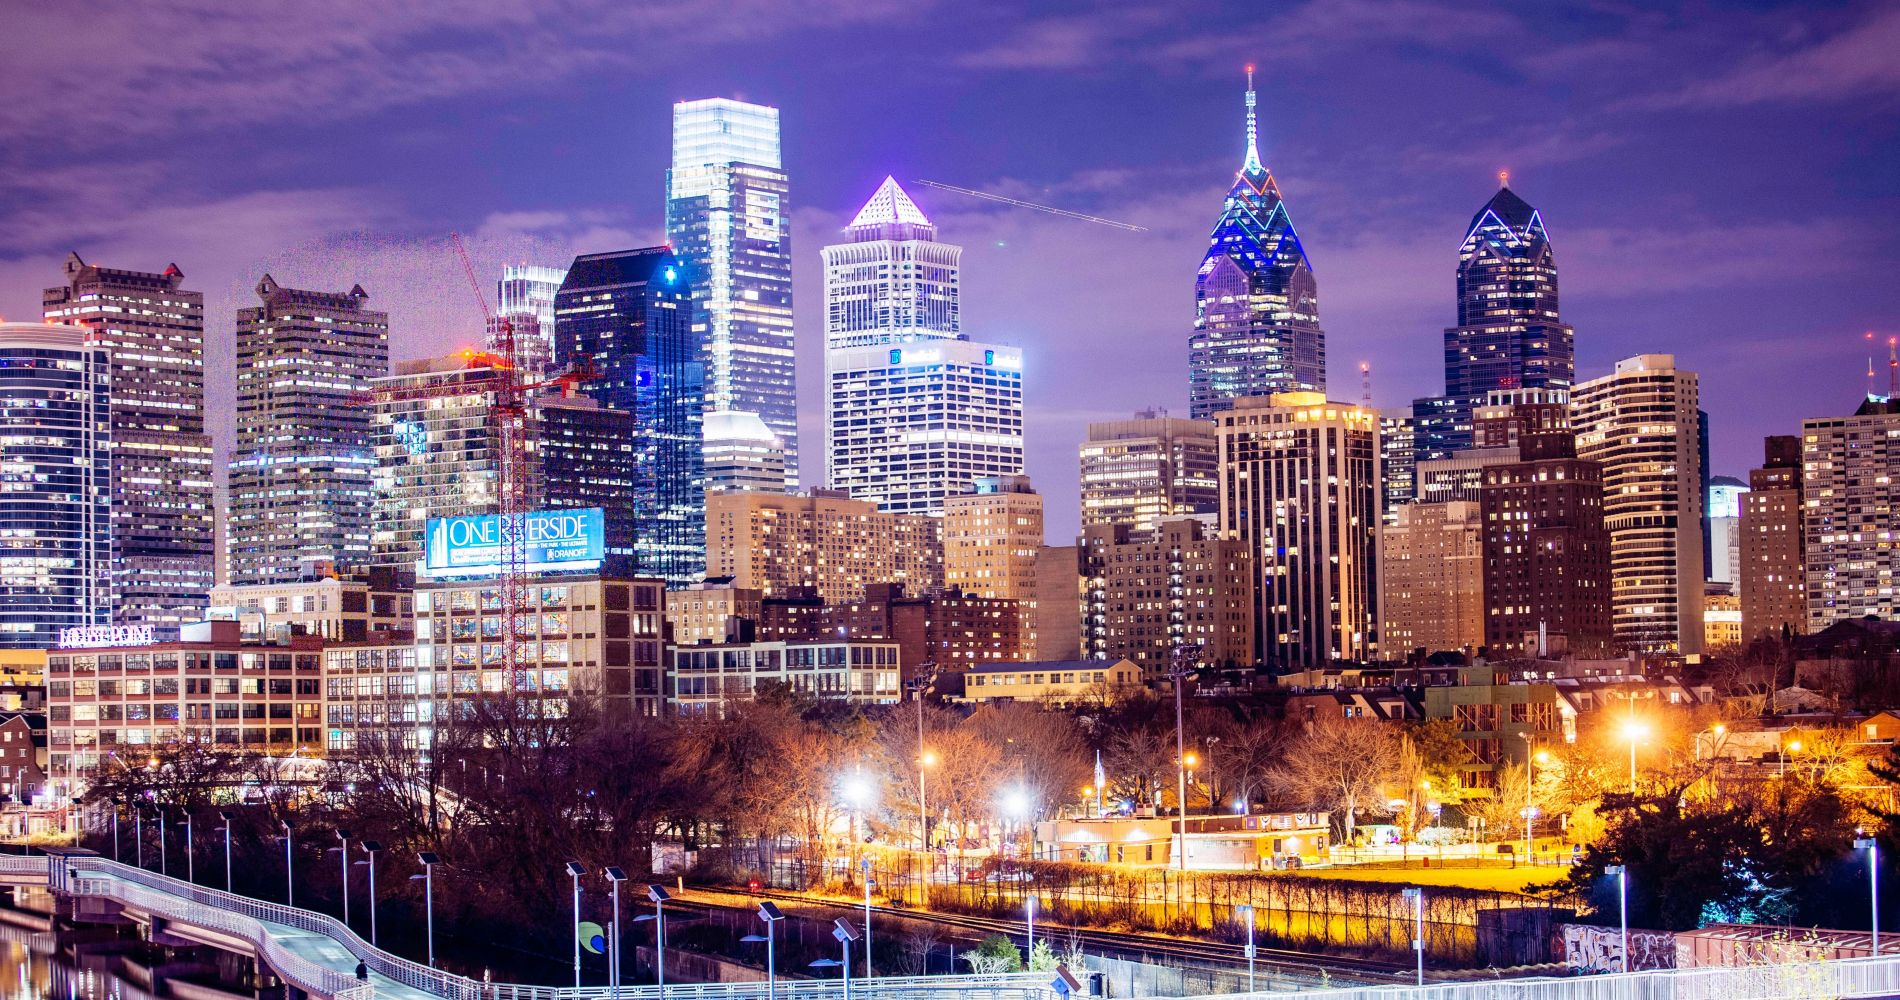 Big Bus Philadelphia - Hop-on Hop-off Tours and other attractions